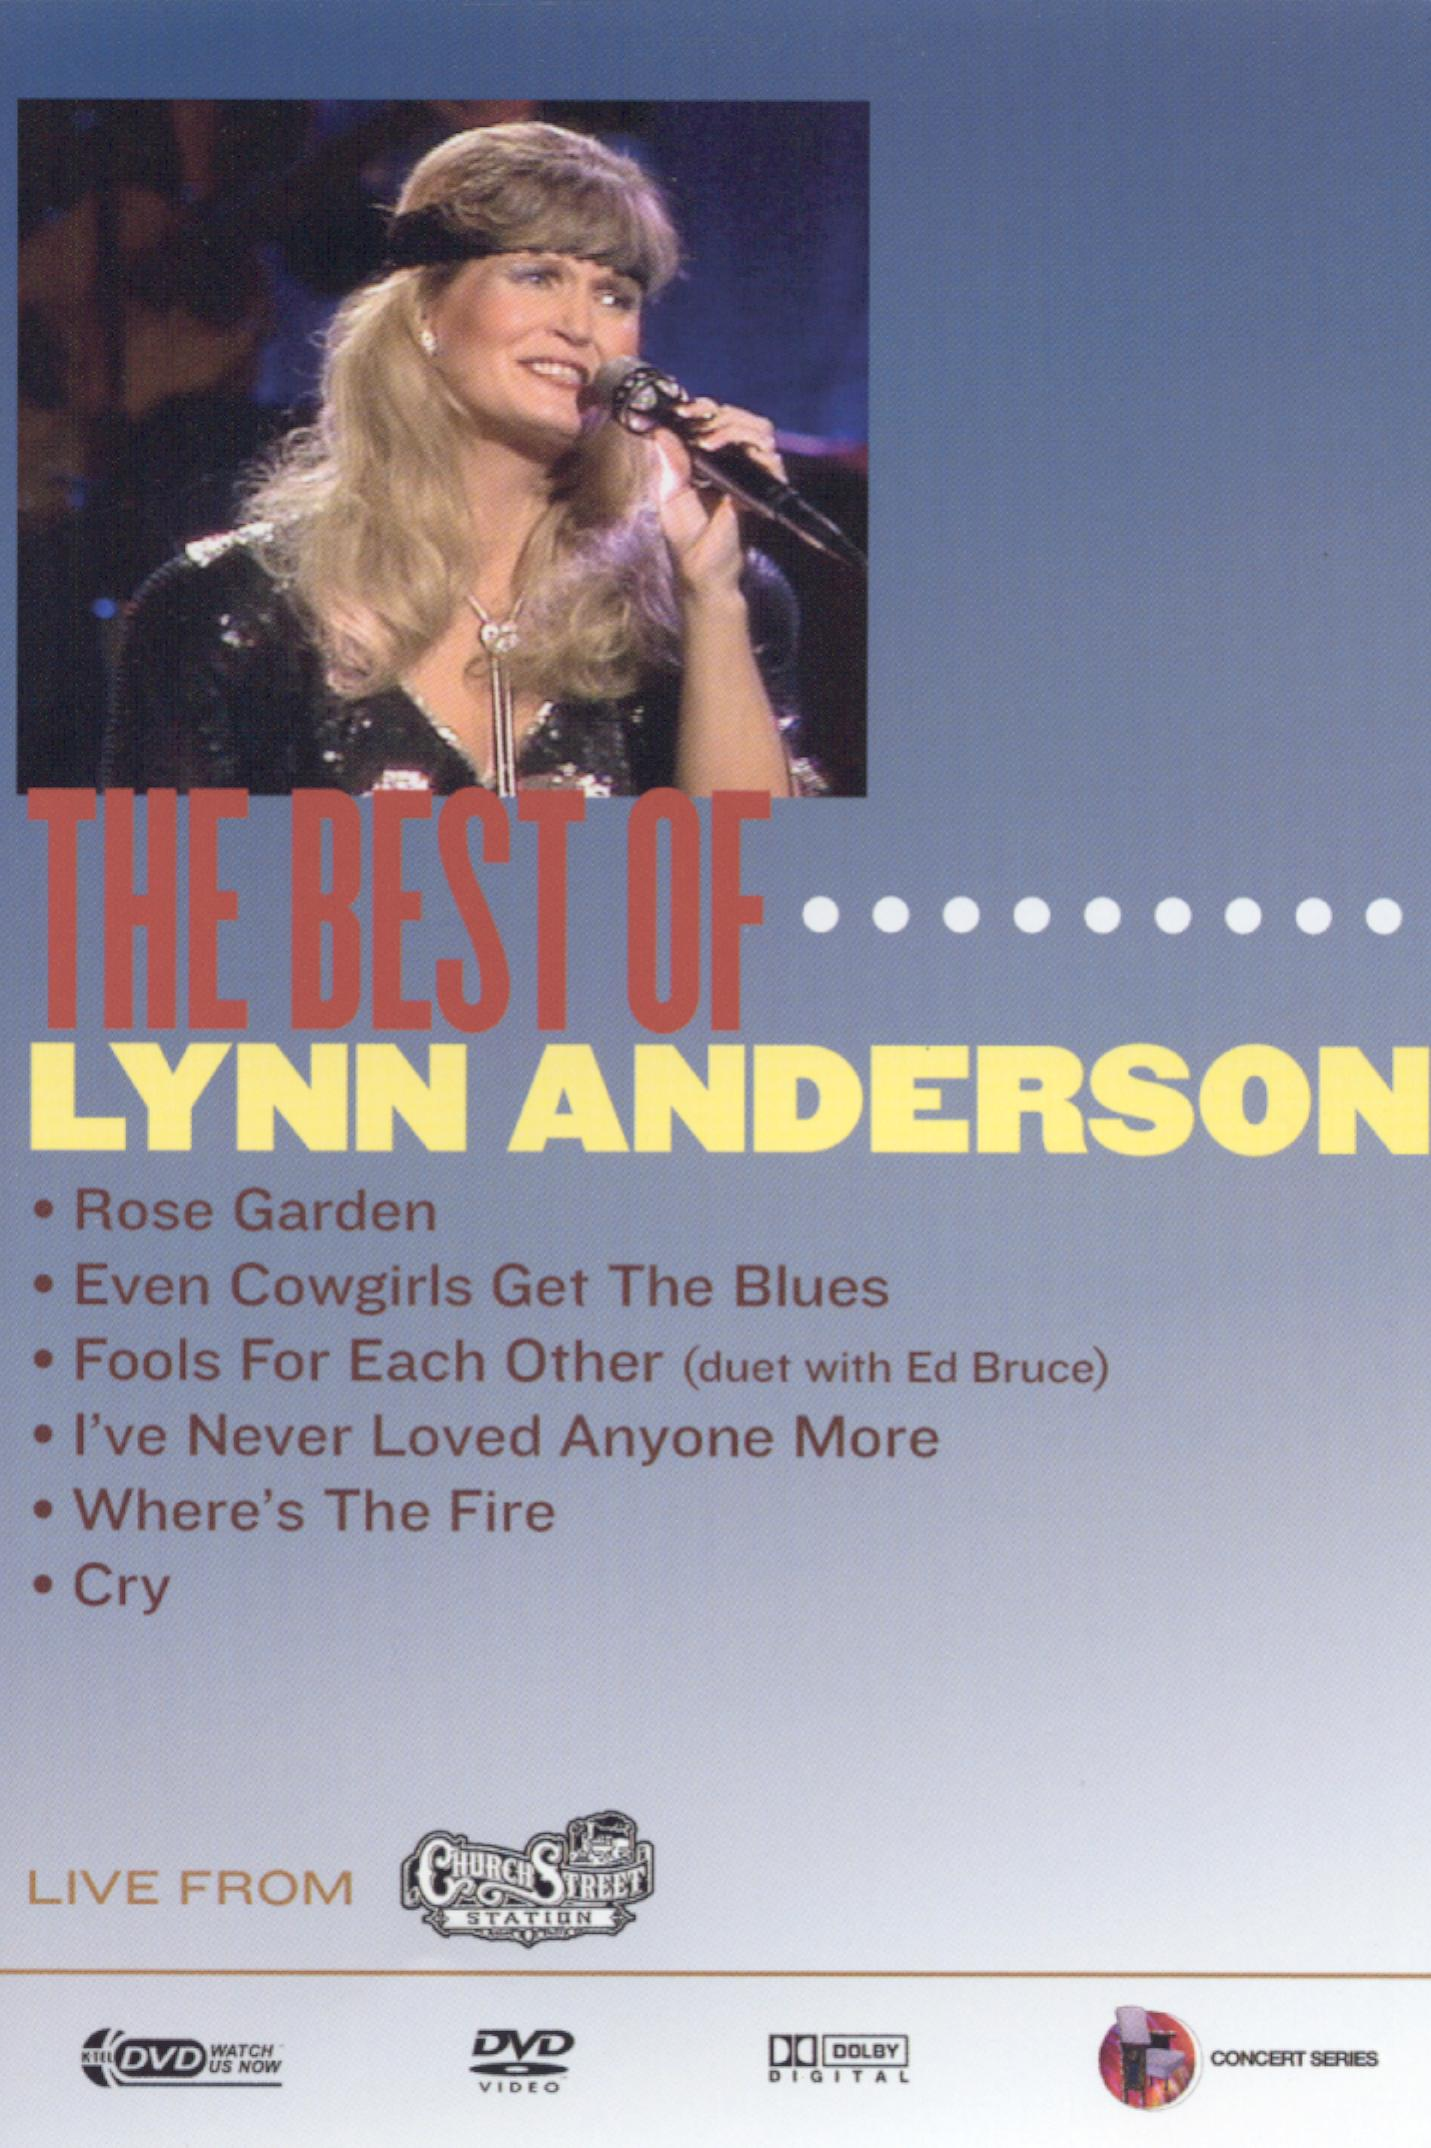 Live From Rock 'n' Roll Palace: The Best of Lynn Anderson